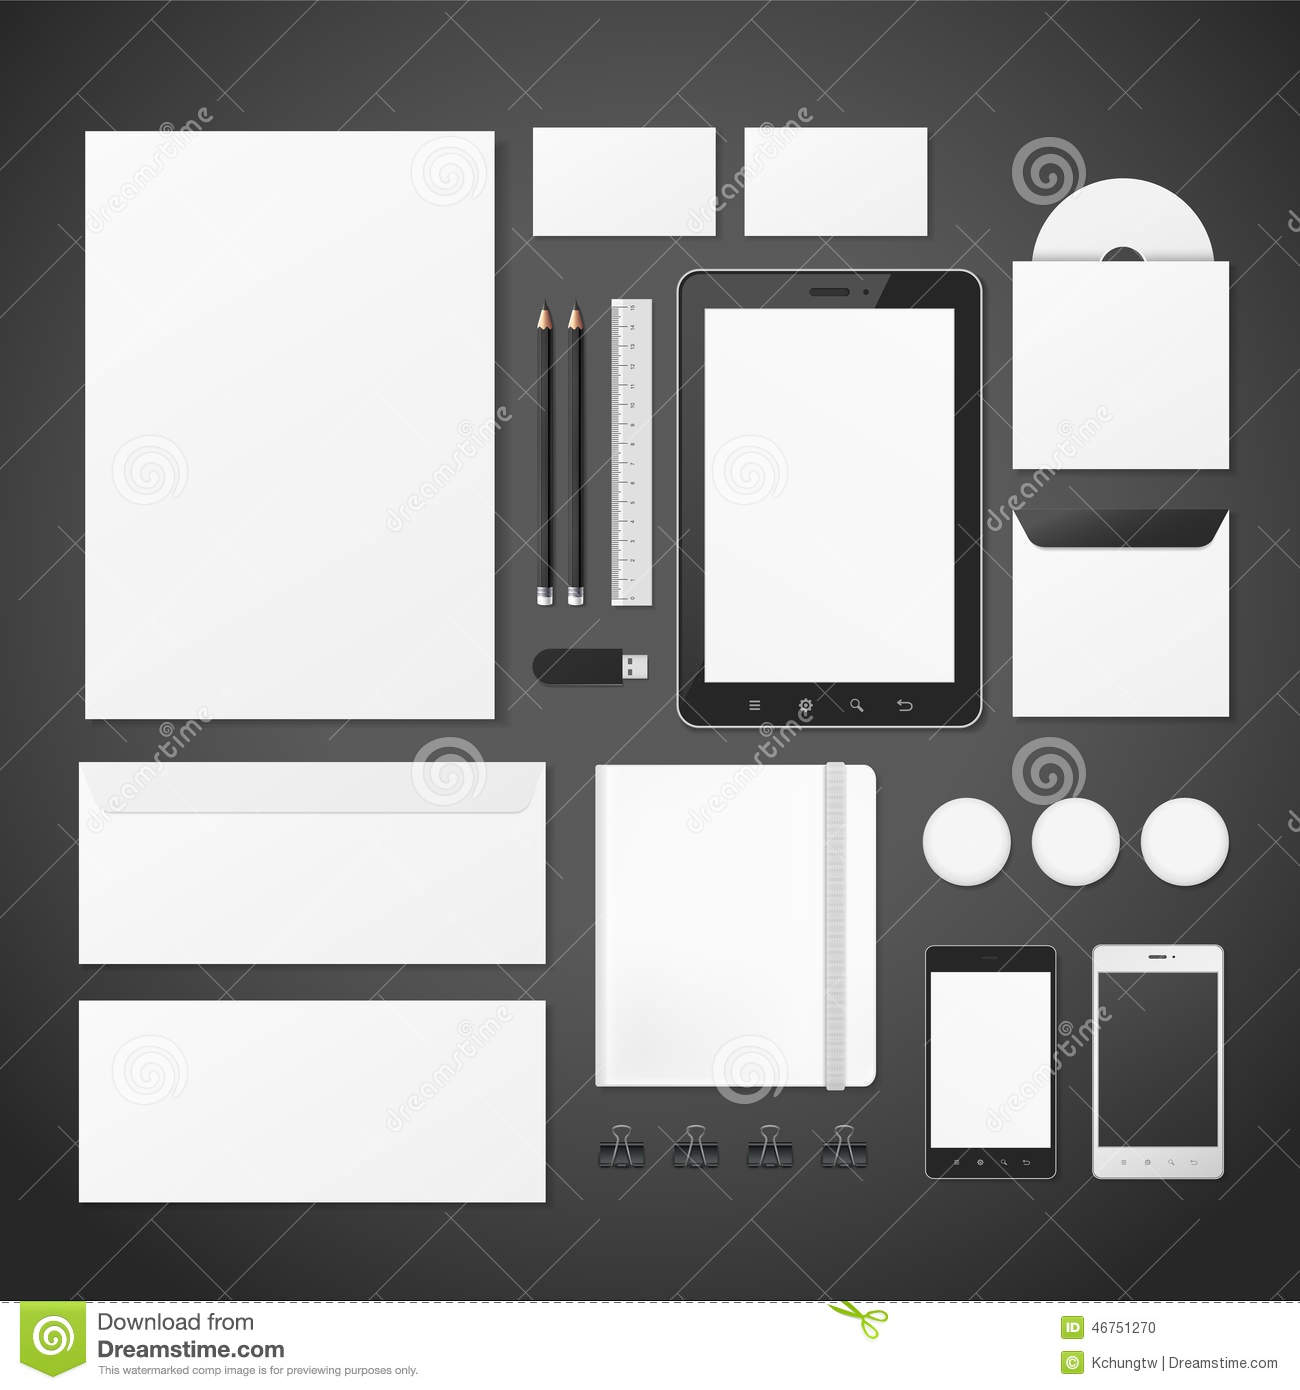 Blank Stationery And Corporate Identity Template Consist: Blank Corporate Identity Stationery Set Stock Vector